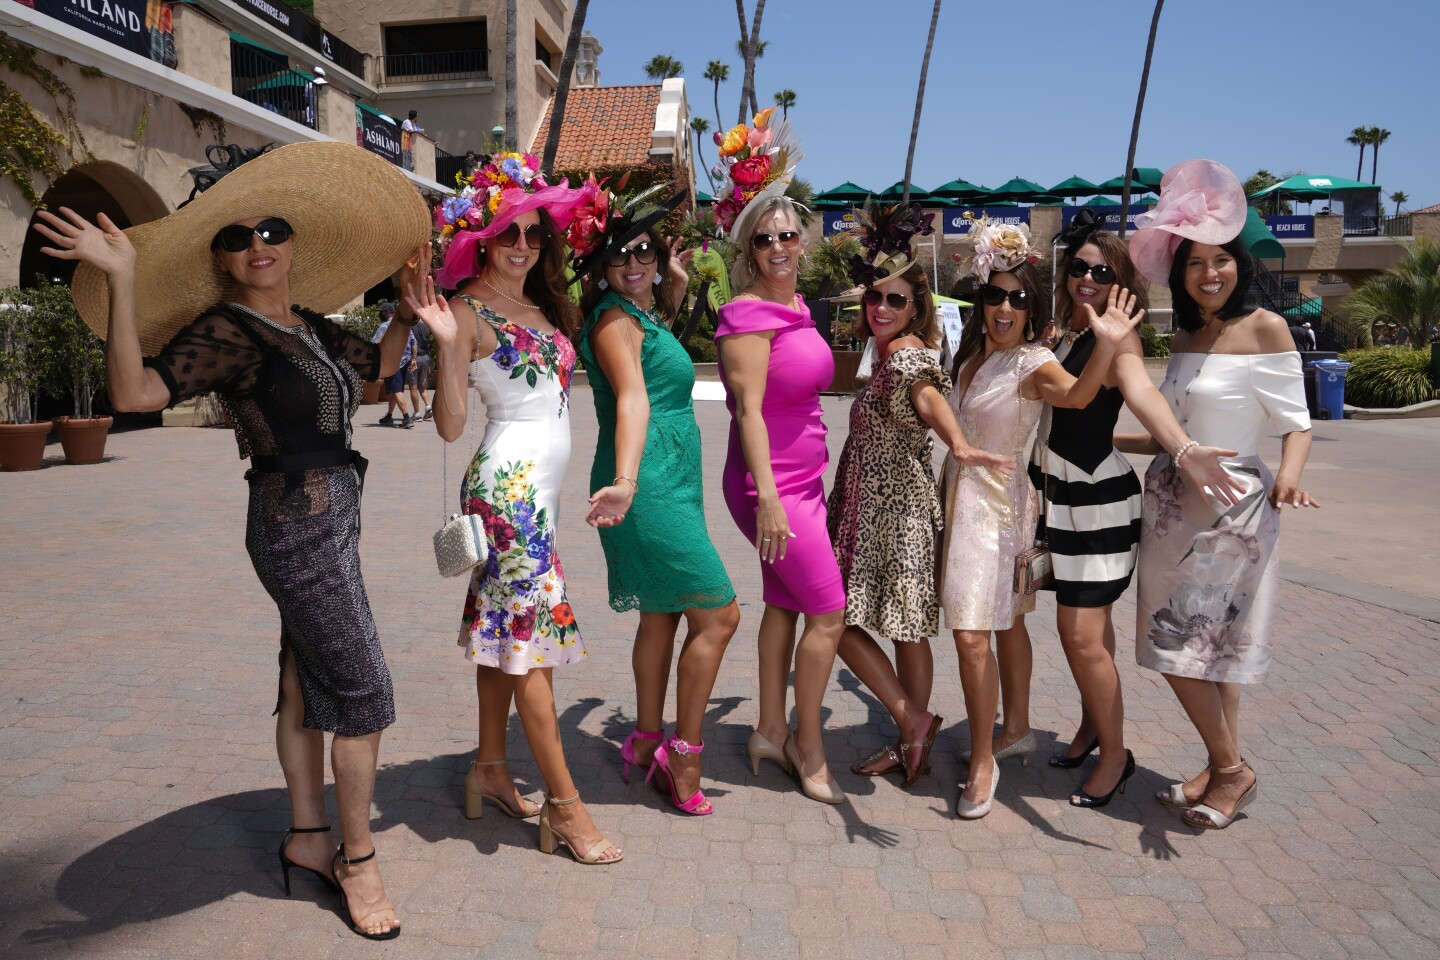 Race fans took part in the annual tradition of wearing fashionable hats.